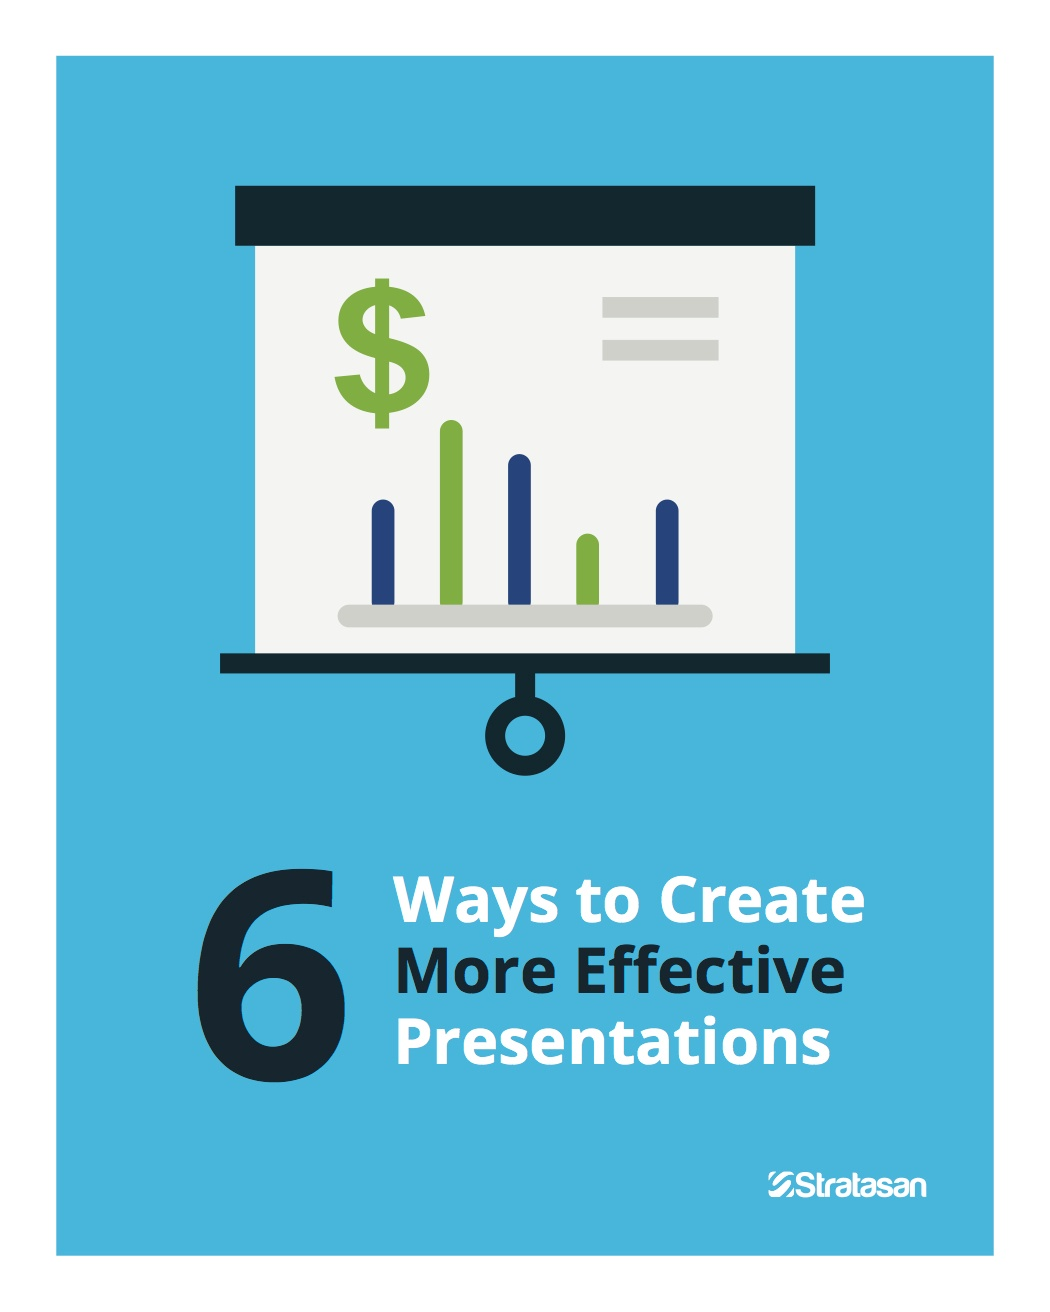 6_Ways_to_Create_More_Effective_Presentations_final.jpg